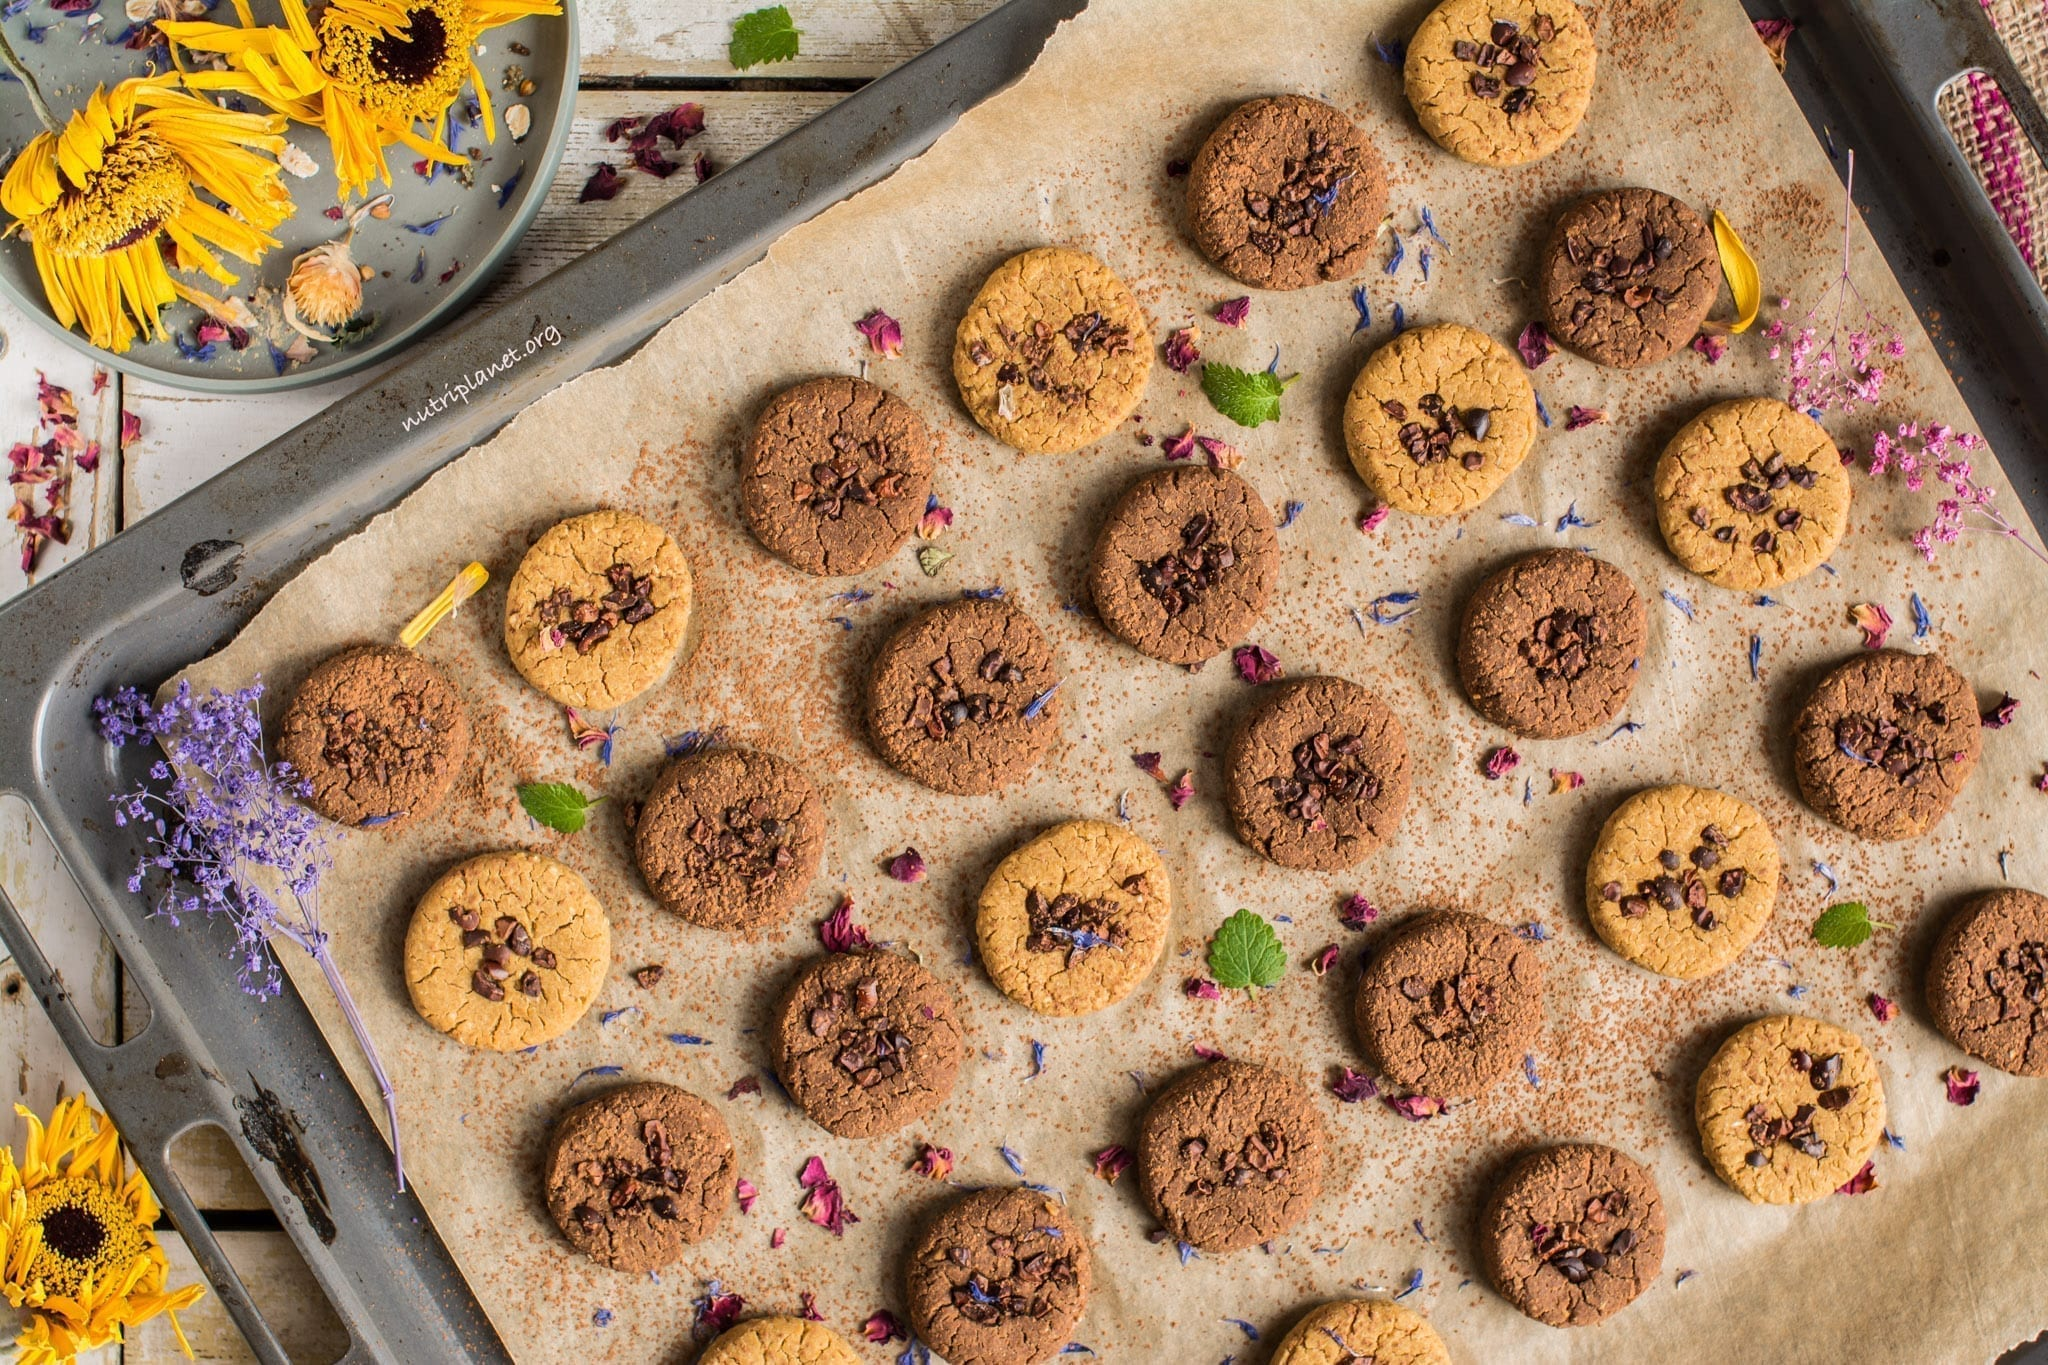 Chickpea Cookies aka Chickpea Cookies Dough Bites